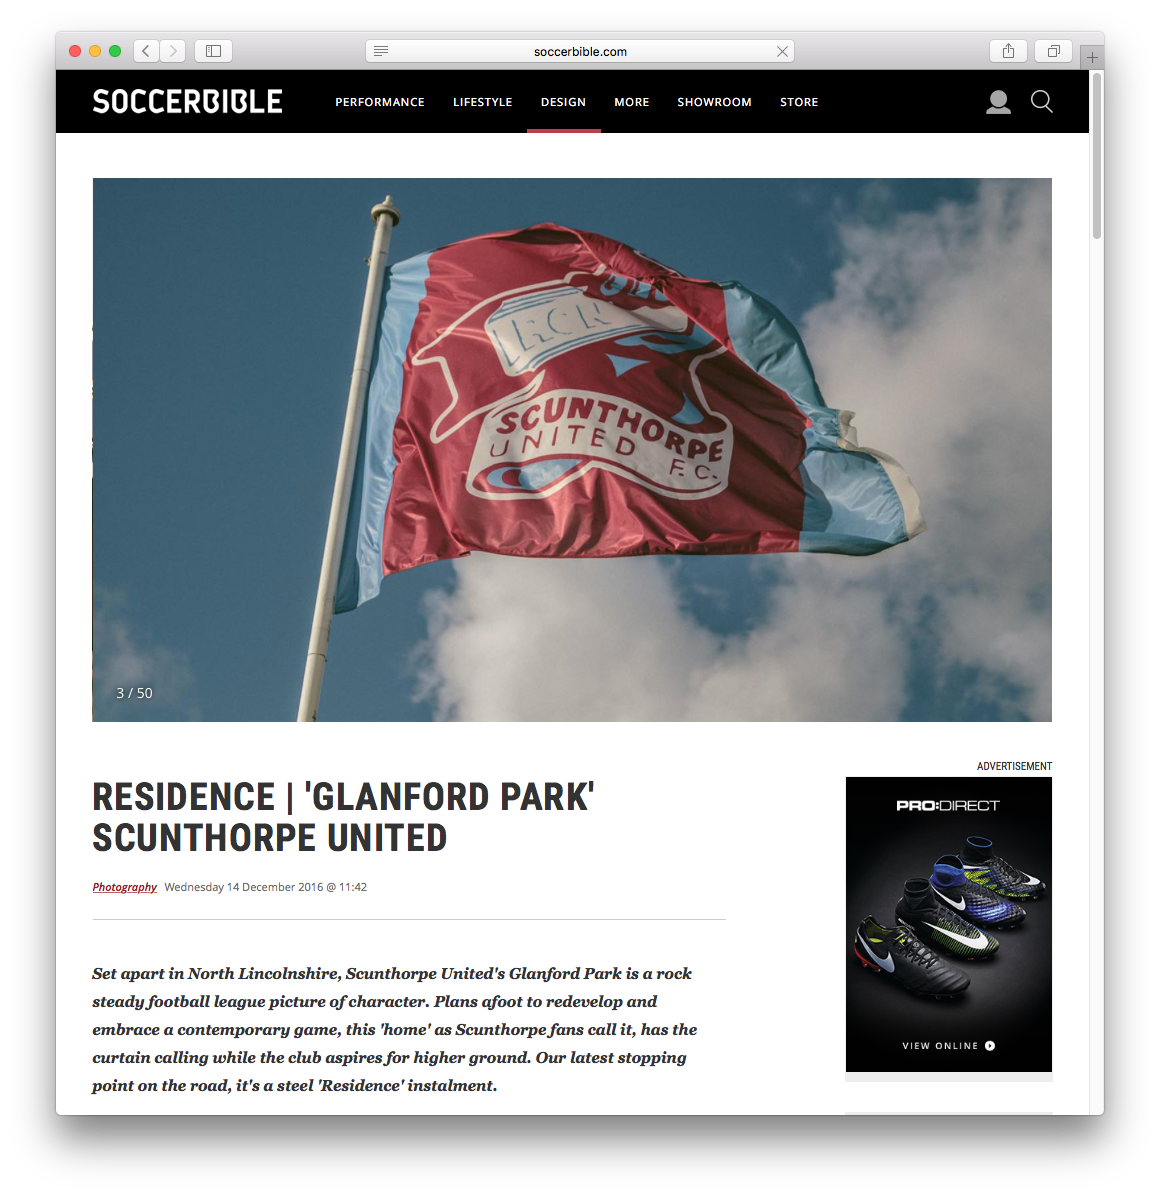 Residence feature at Glanford Park (Home of Scunthorpe United) is now on the Soccer Bible website.